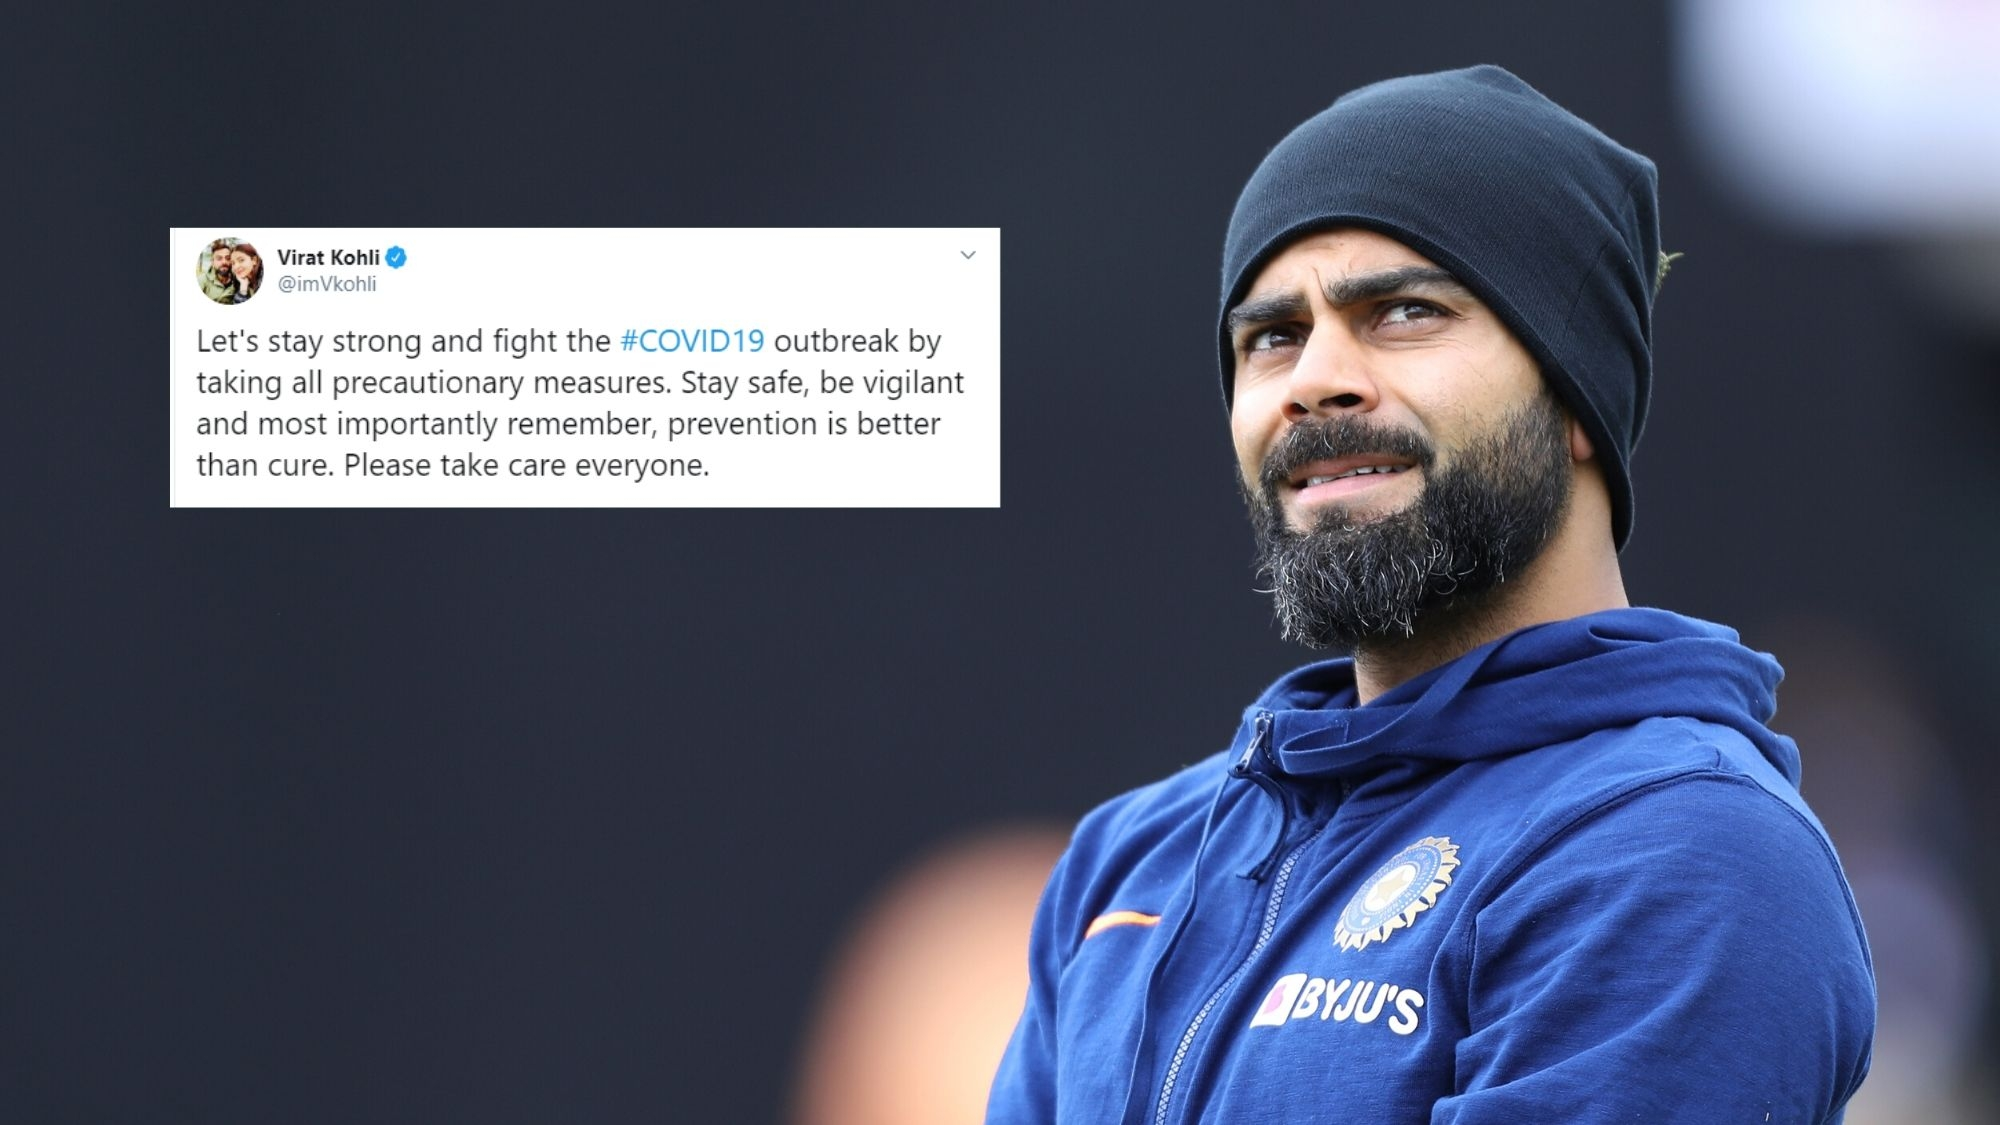 let u2019s stay strong and fight coronavirus outbreak  virat